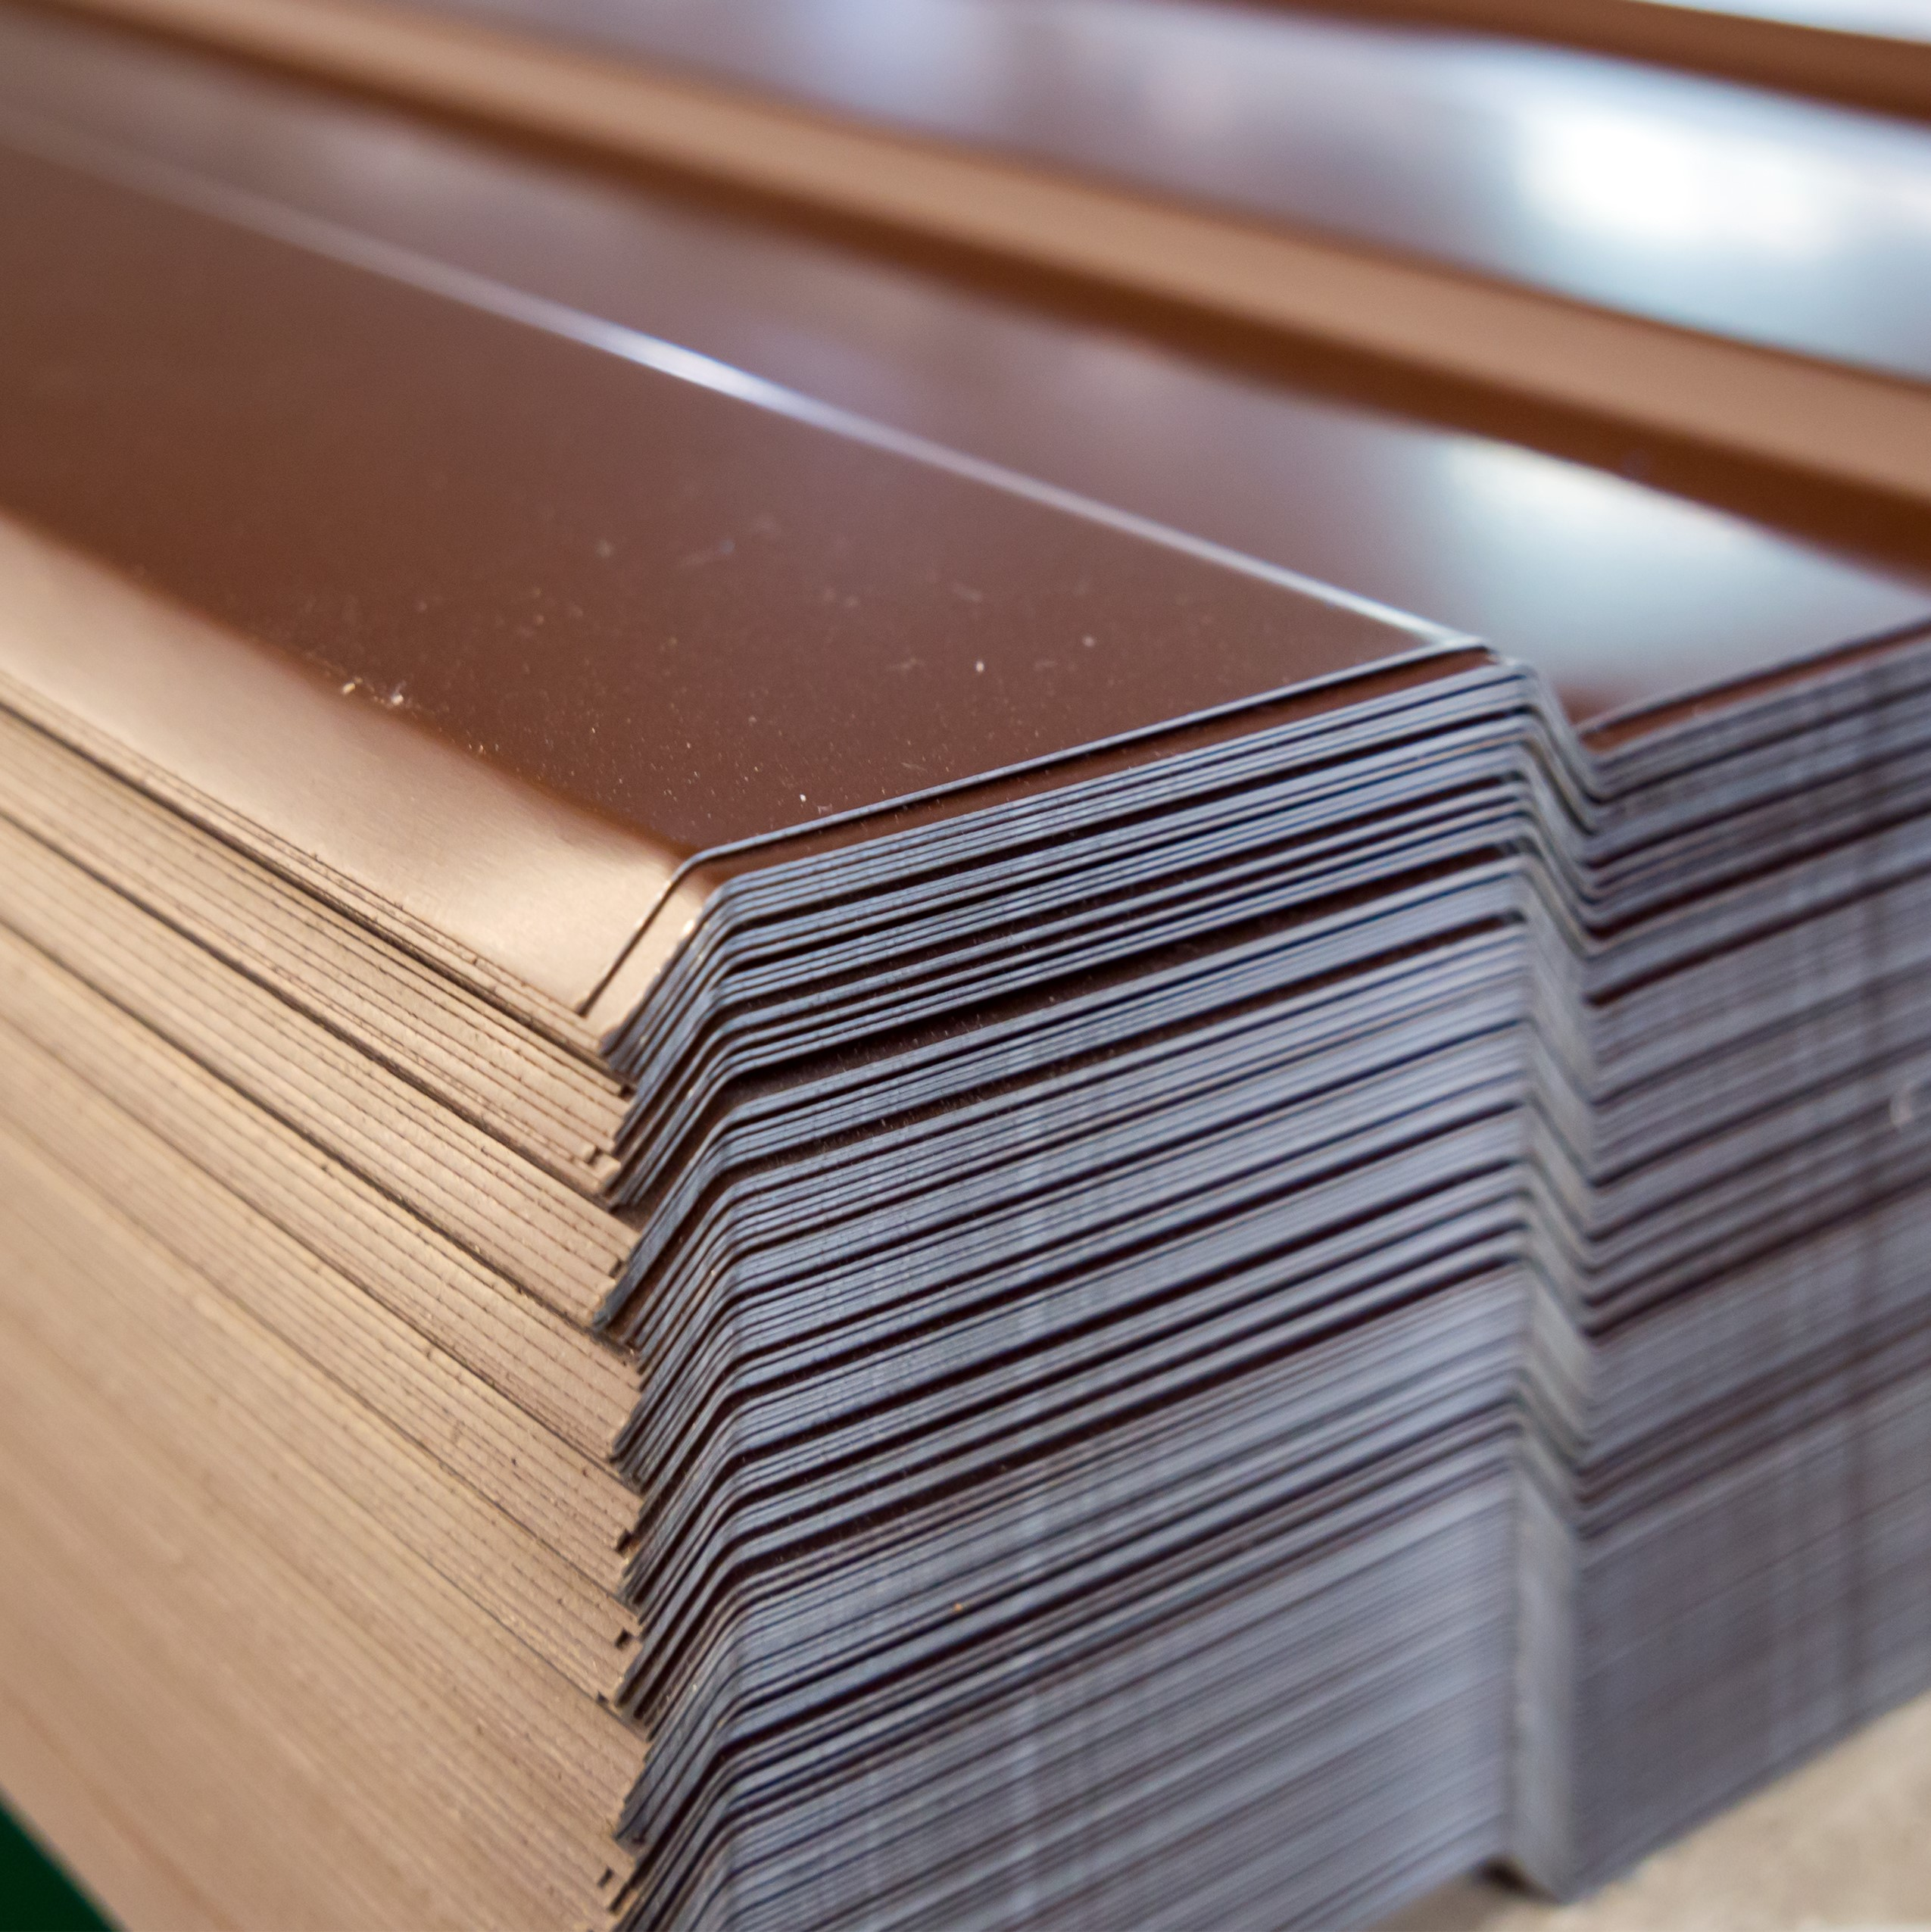 A type of metal roofing, stacked up and ready to install.